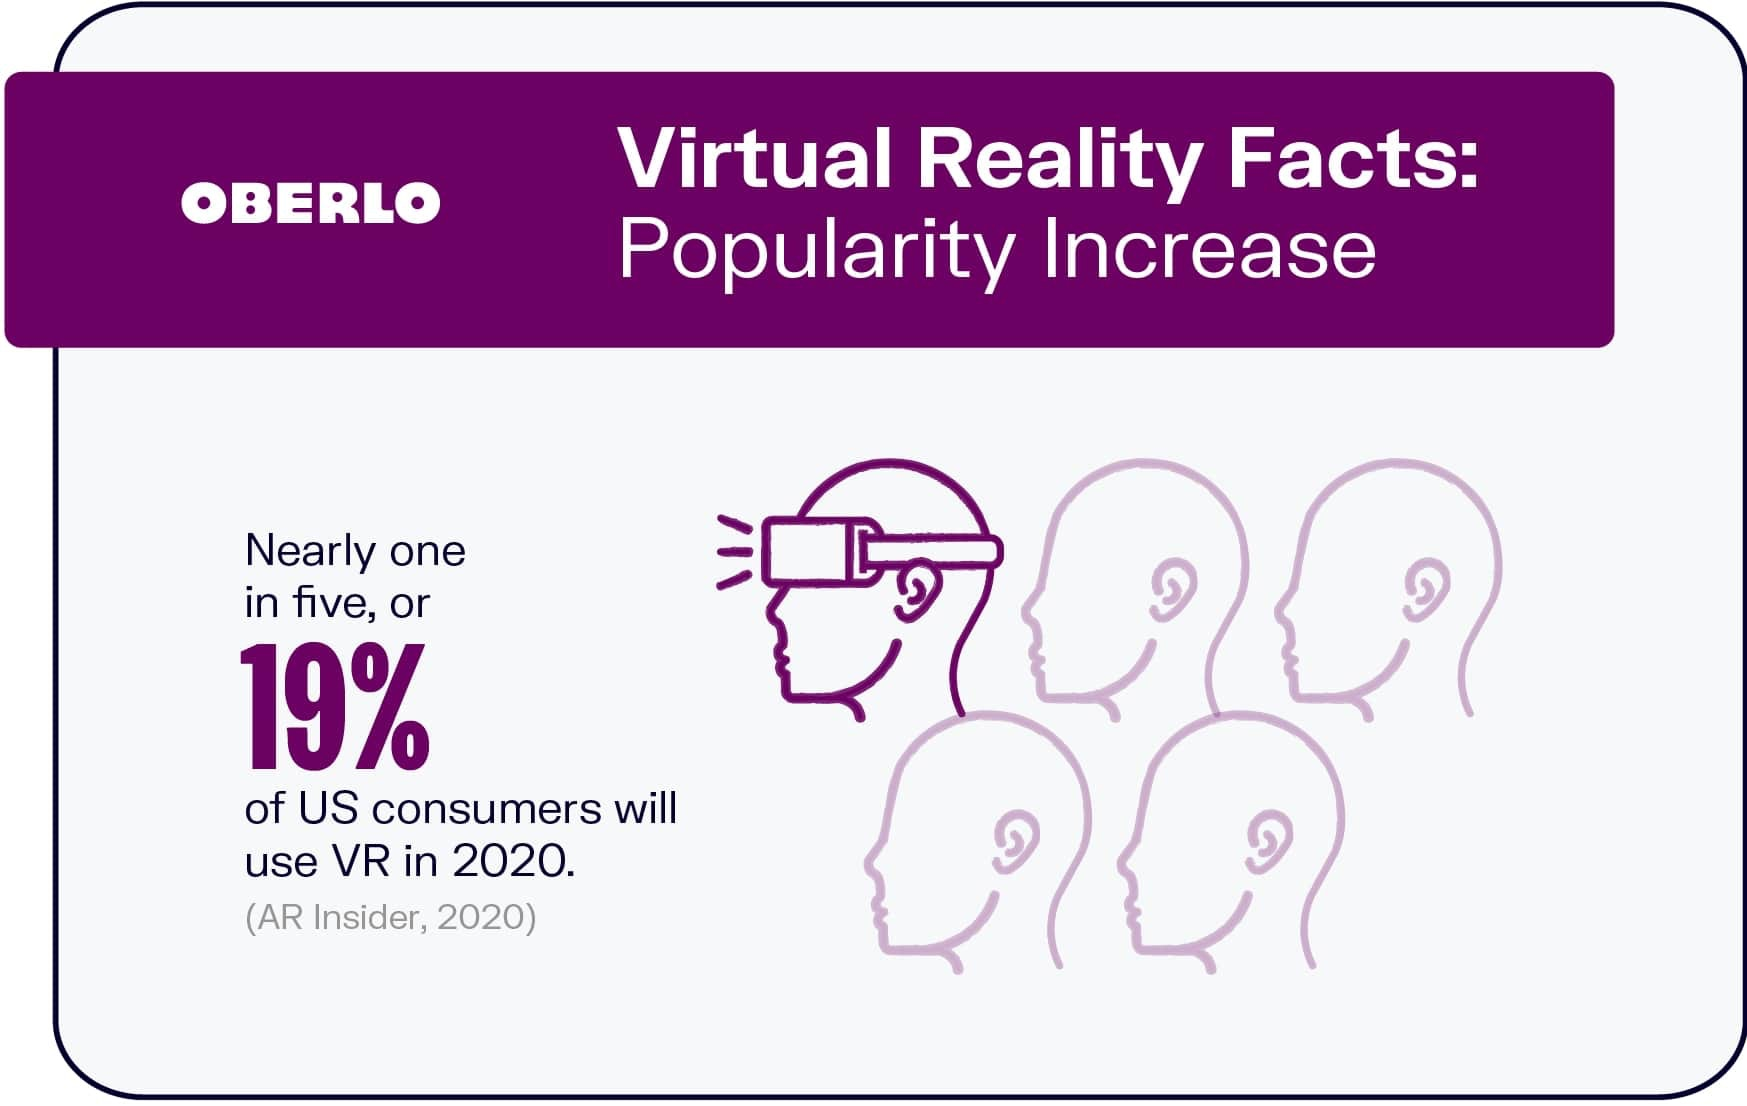 Virtual Reality Facts: Popularity Increase